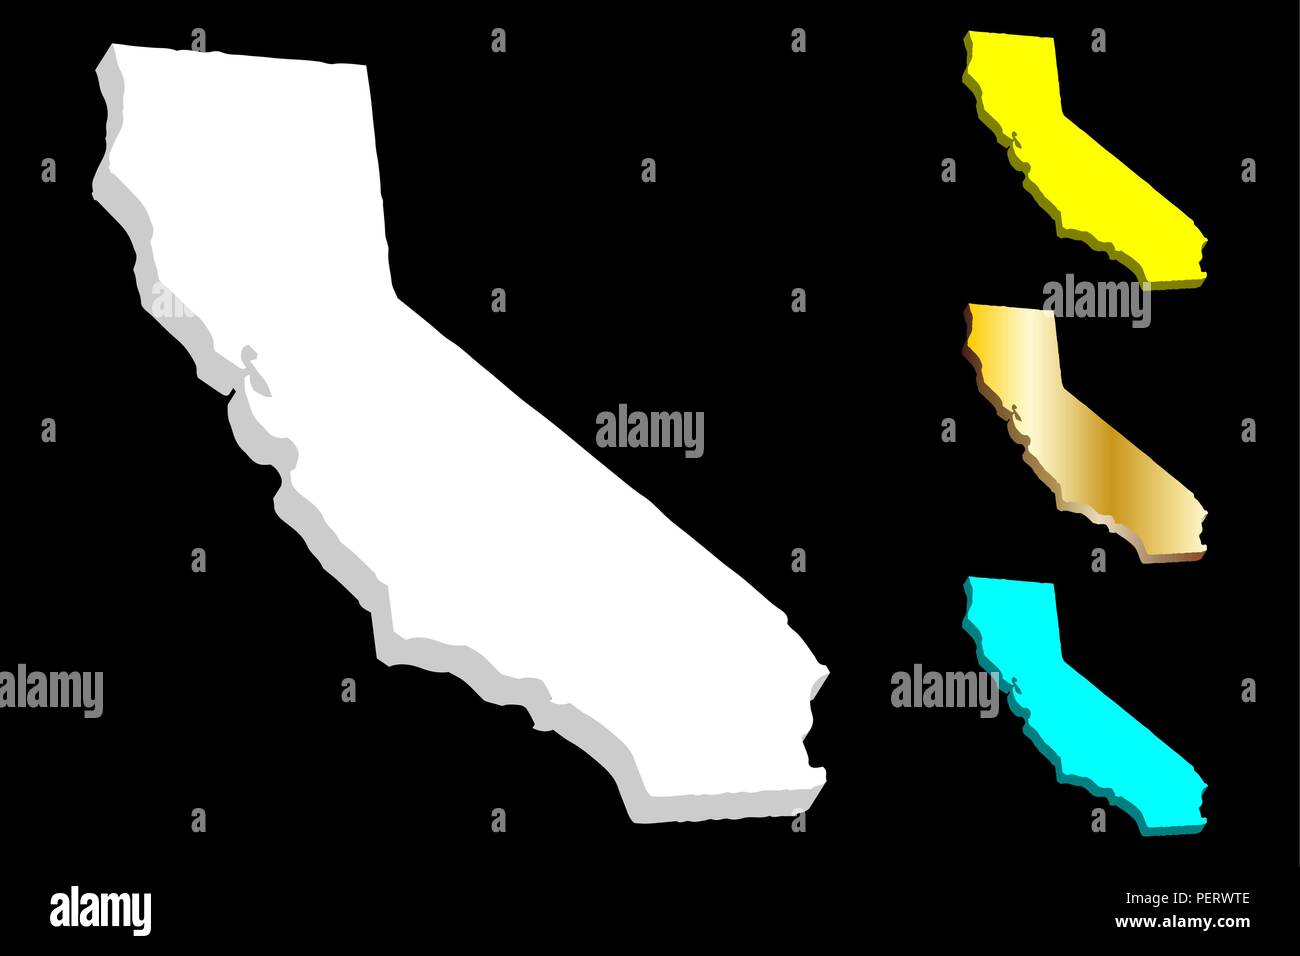 3D map of California (United States of America, The Golden State) - white, yellow, blue and gold - vector illustration Stock Vector